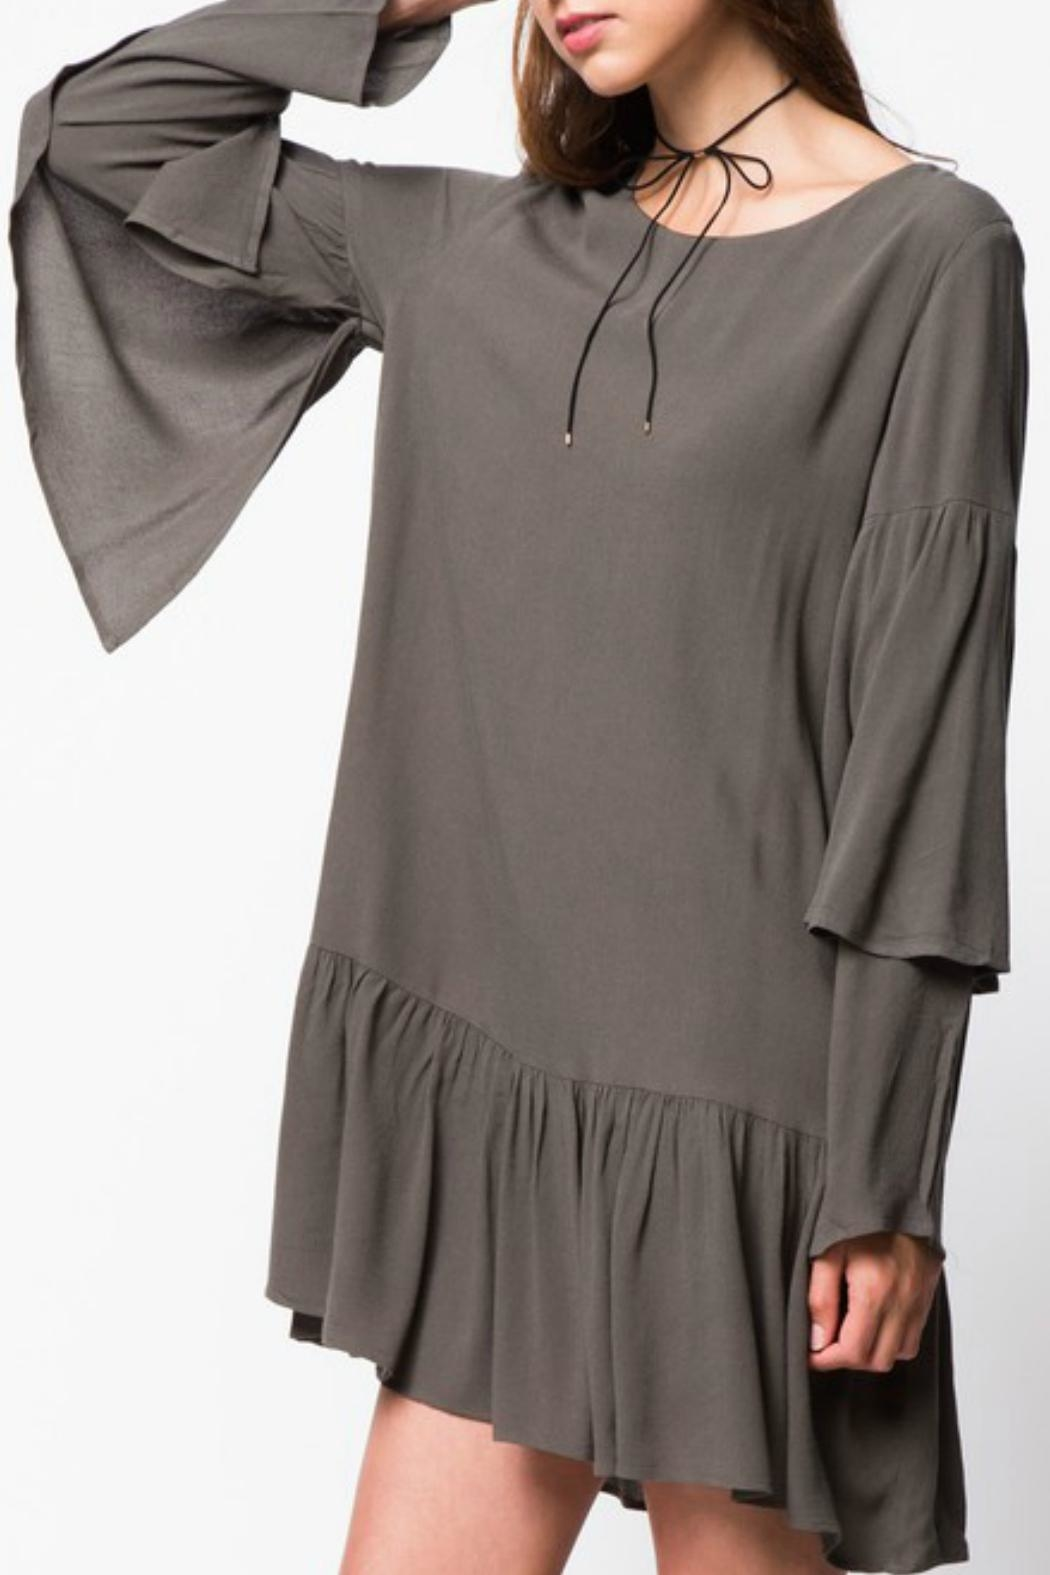 LoveRiche Ruffle Sleeve Dress - Front Full Image